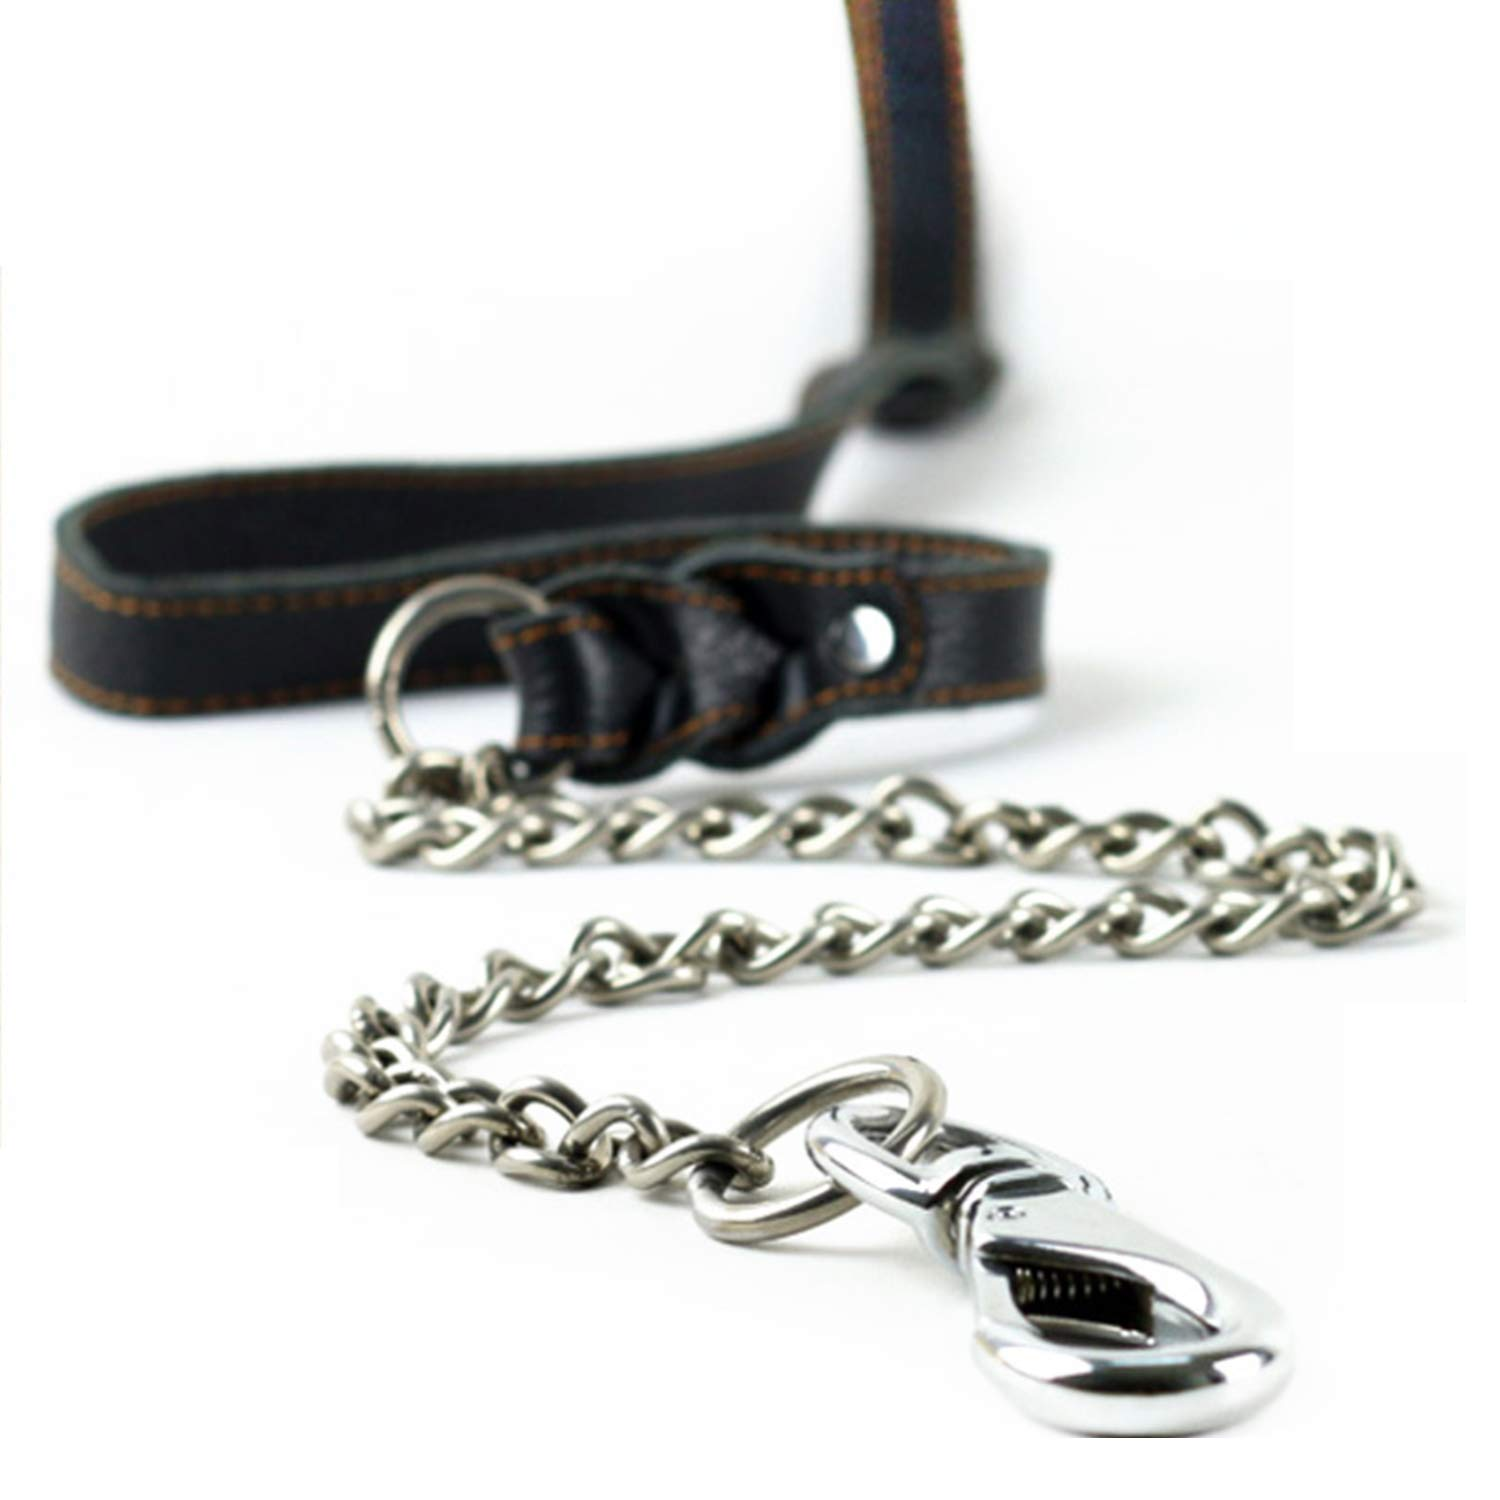 Pet Leash Rope Suitable for Medium and Large Dogs Walking Training Stainless Steel Anti-Bite Dog Chain, Durable